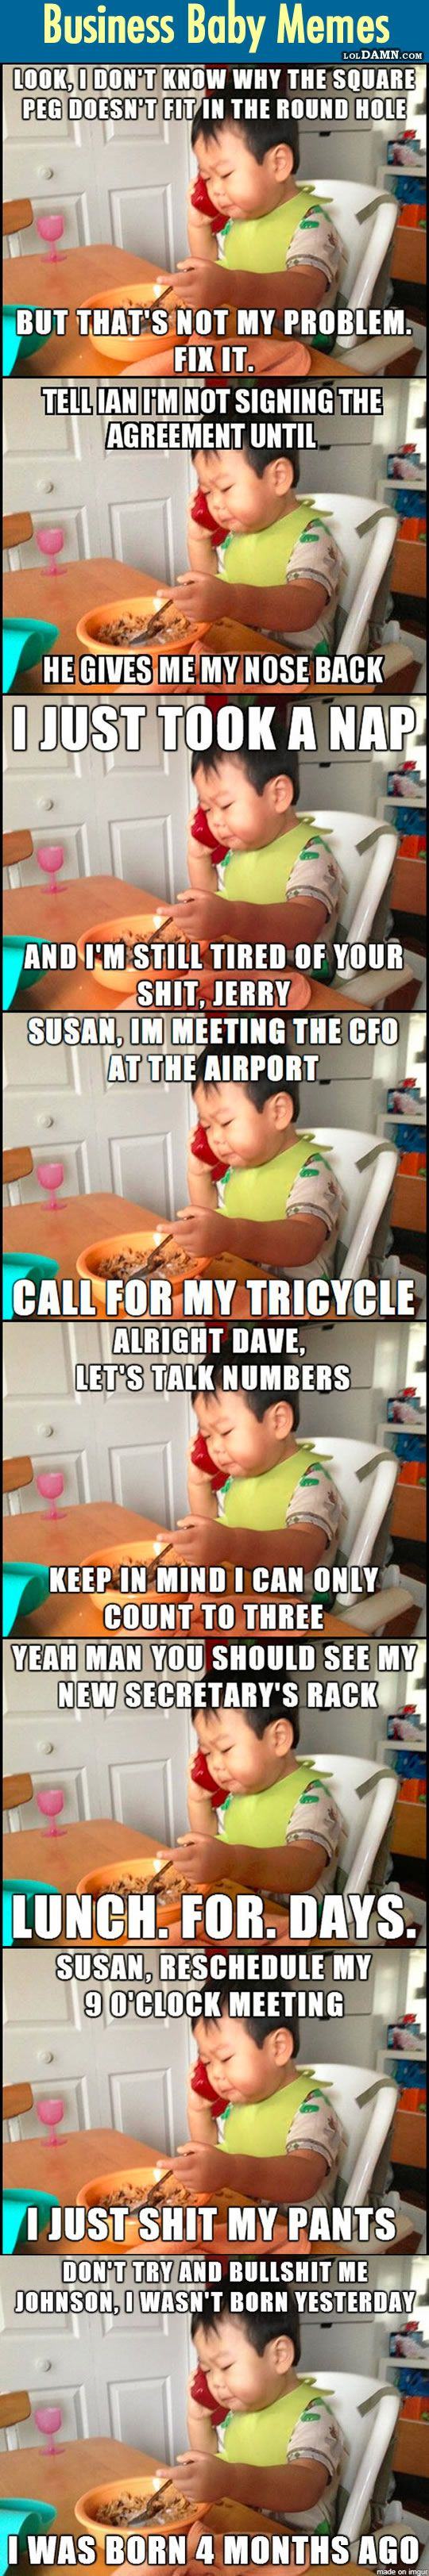 "Here, I Present You The New ""Business Baby"". 10 Funniest Business Baby Memes So Far."